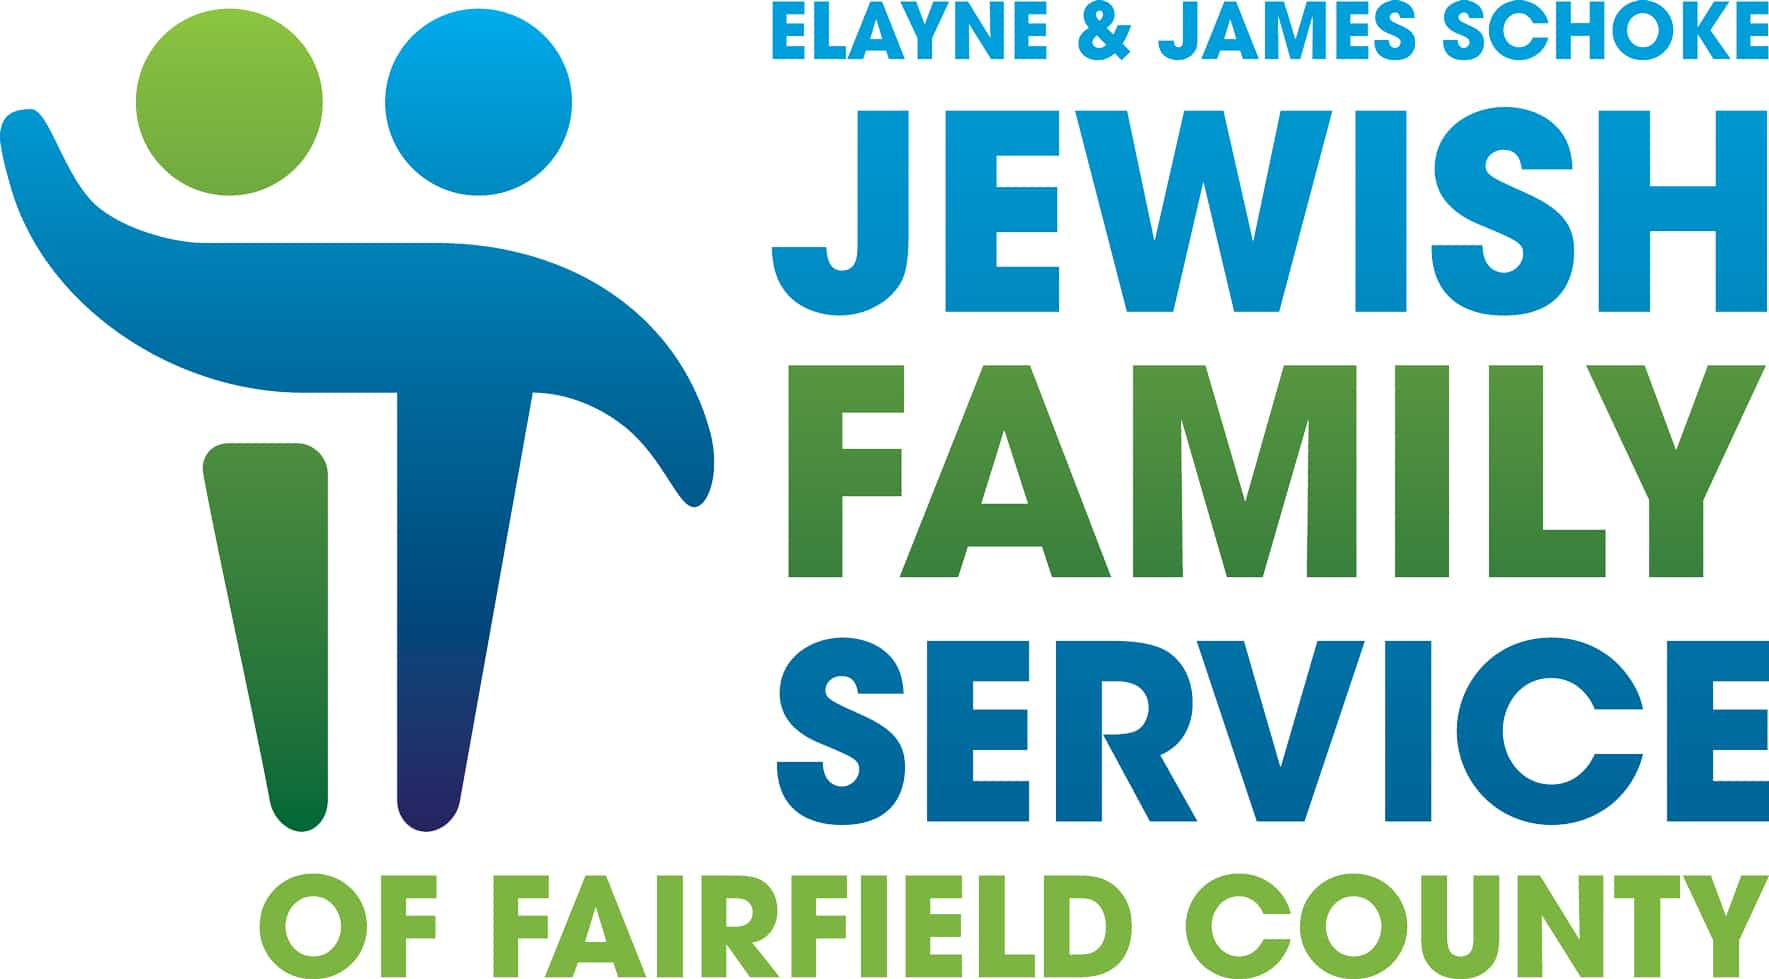 jewish singles in mccreary county Find mccreary county kentucky hospitals, children's and pediatric centers, patient care & medical facilities, urgent care, emergency room, ambulance, and ems emergency services.